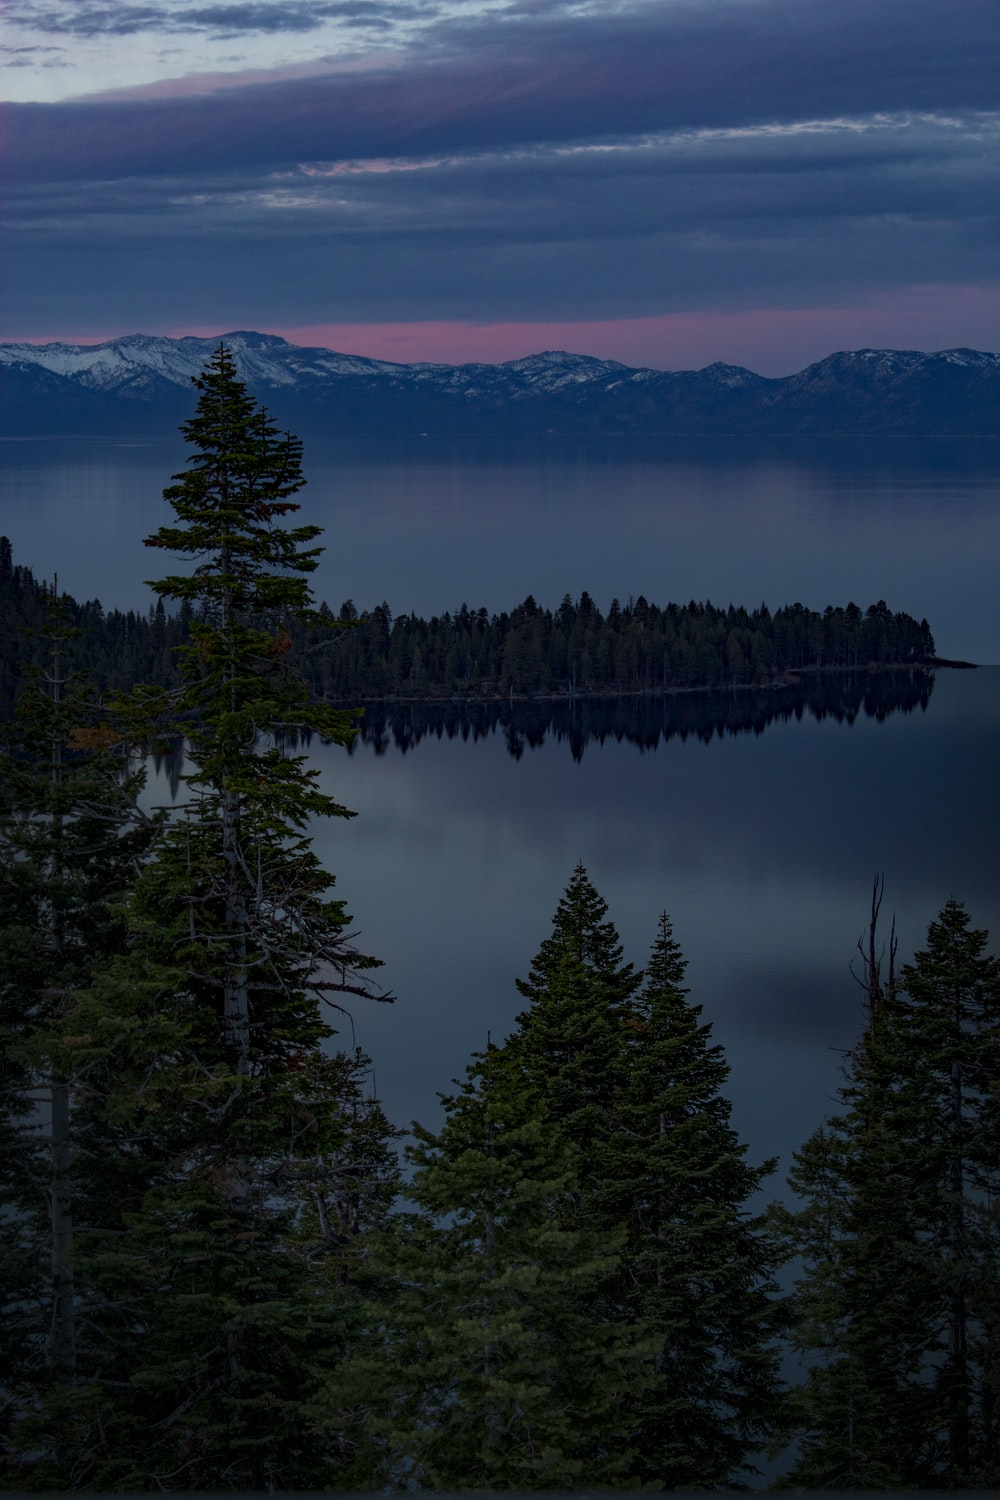 silhouette photography of forest and mountain near body of water